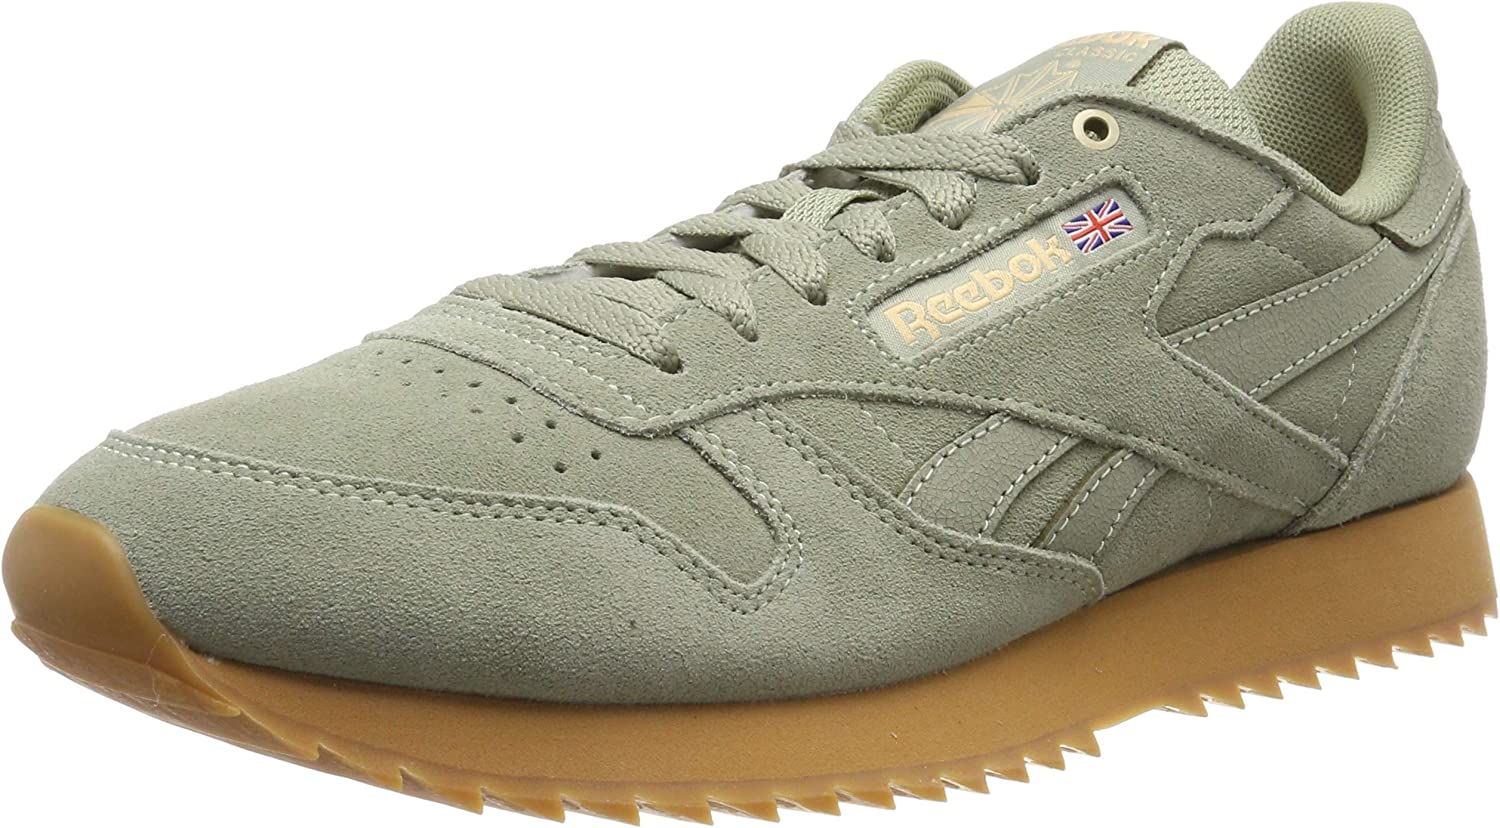 Reebok Men's's Classic Leather Ripple Low-Top Sneakers